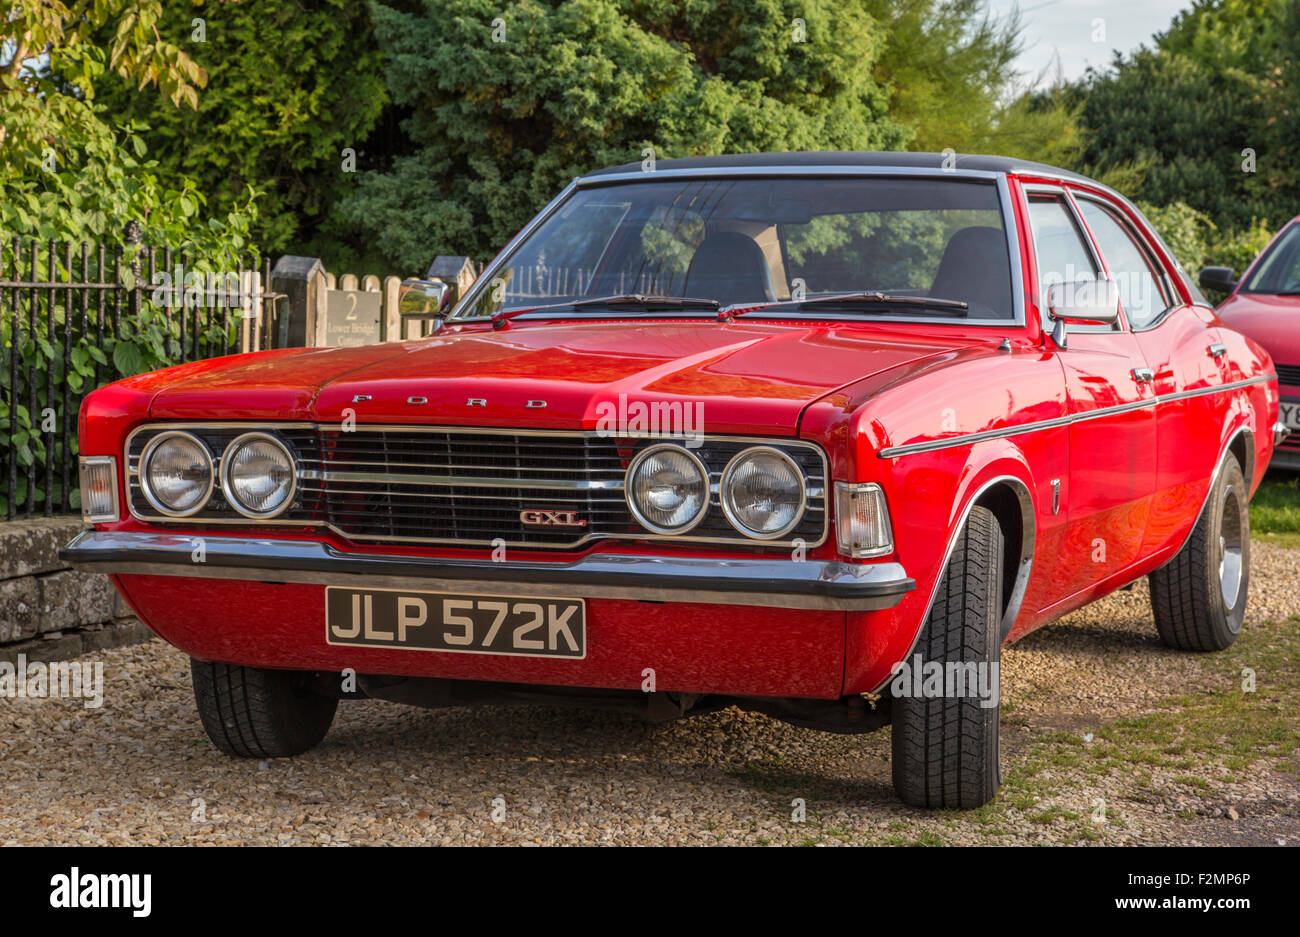 red cortina stock photos & red cortina stock images - alamy